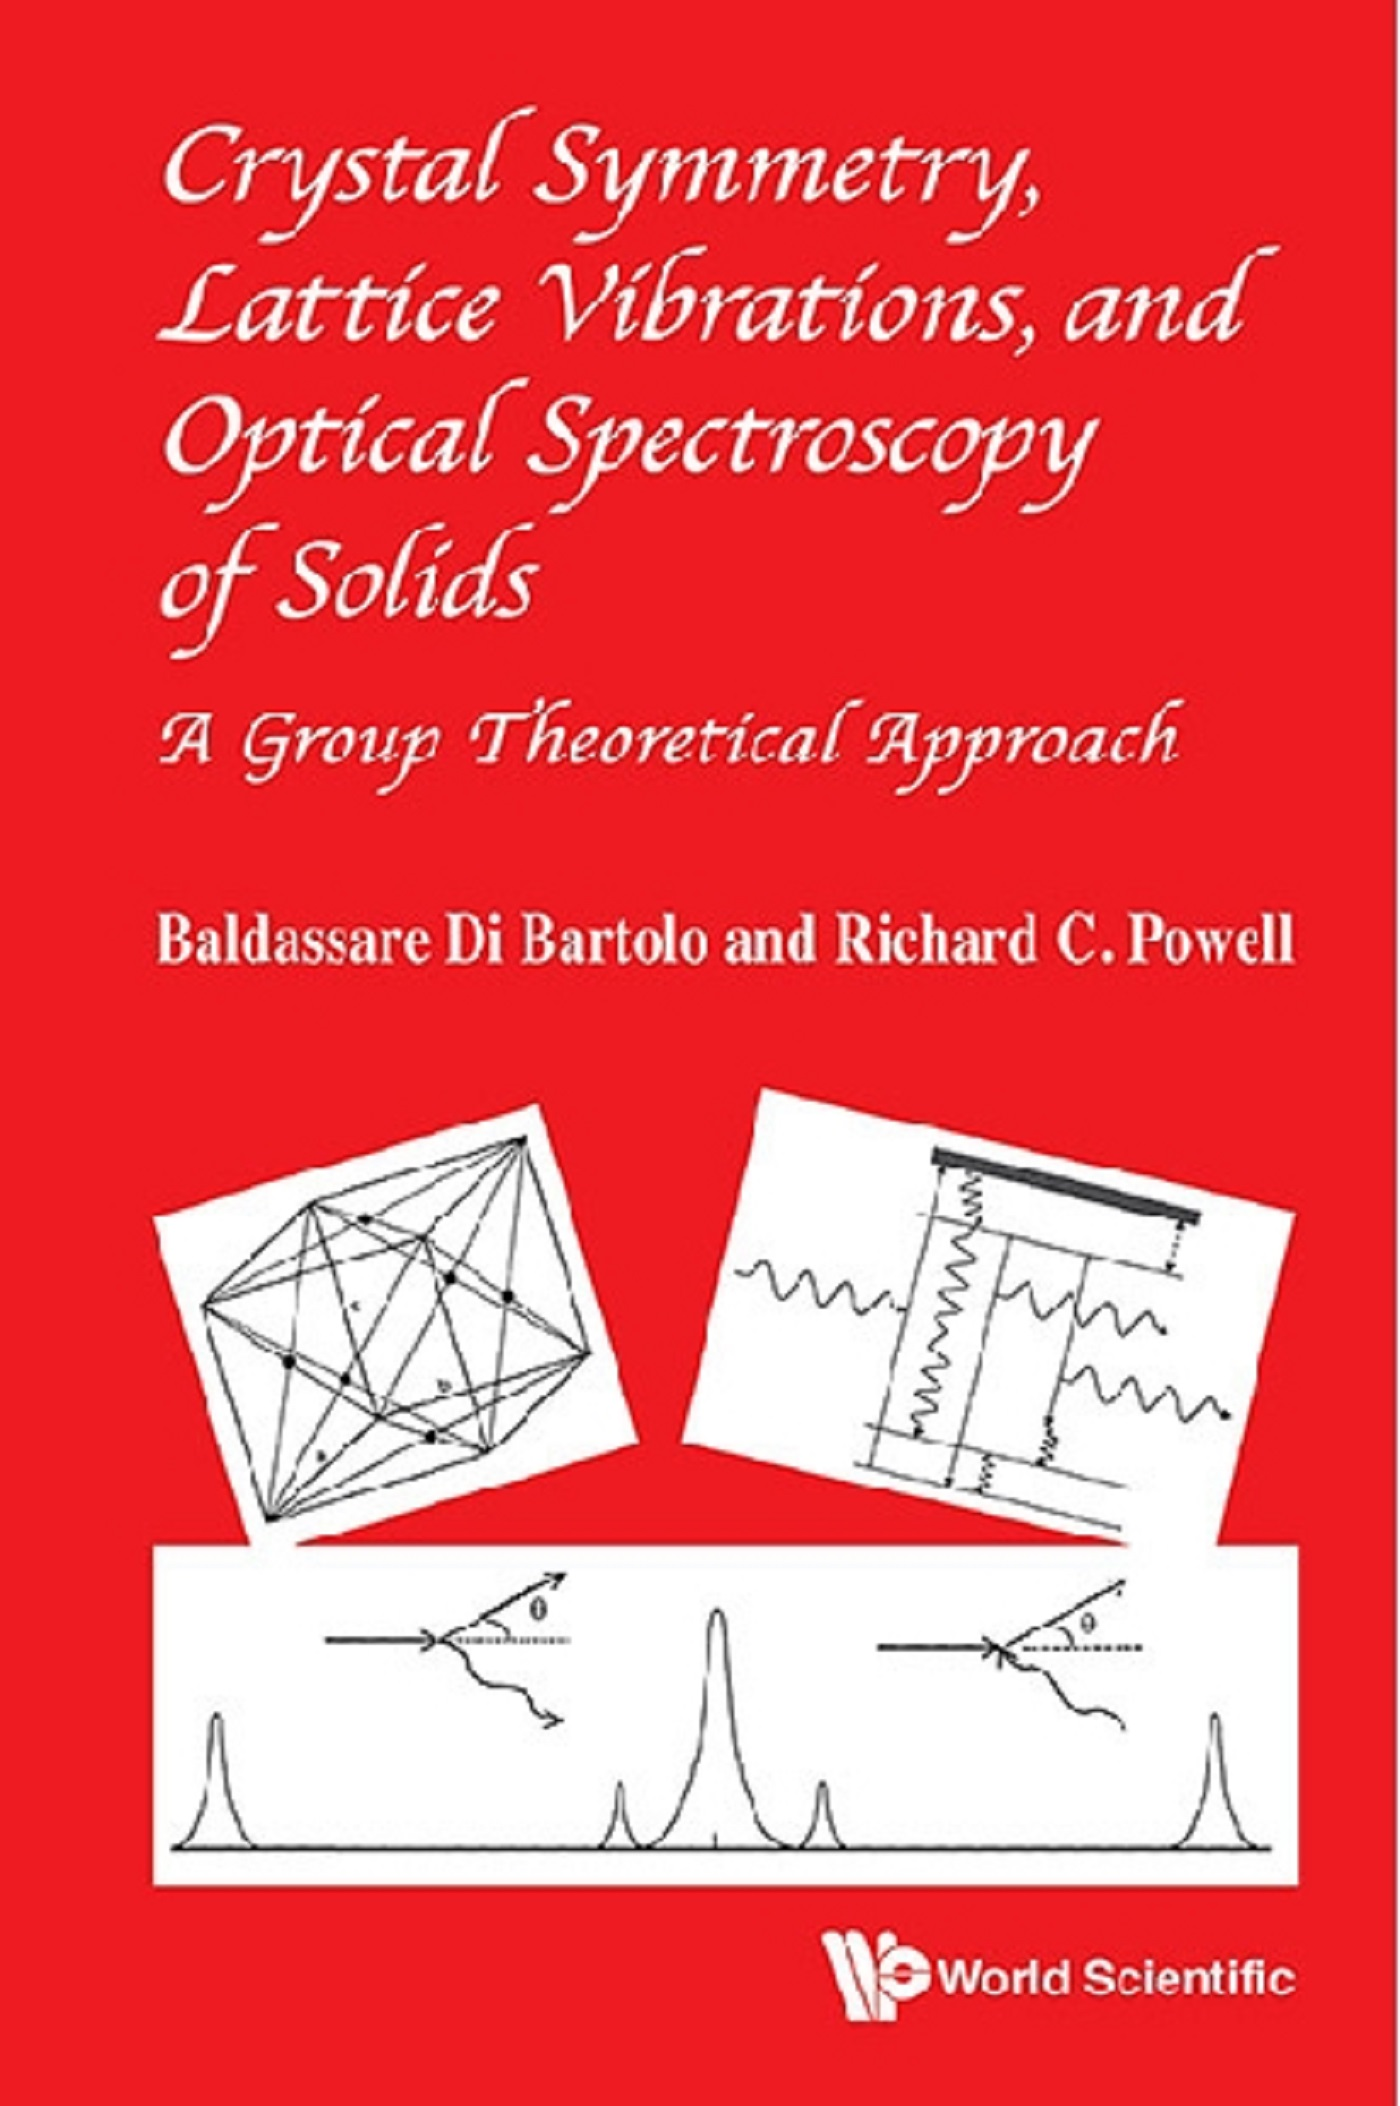 Crystal Symmetry, Lattice Vibrations and Optical Spectroscopy of Solids